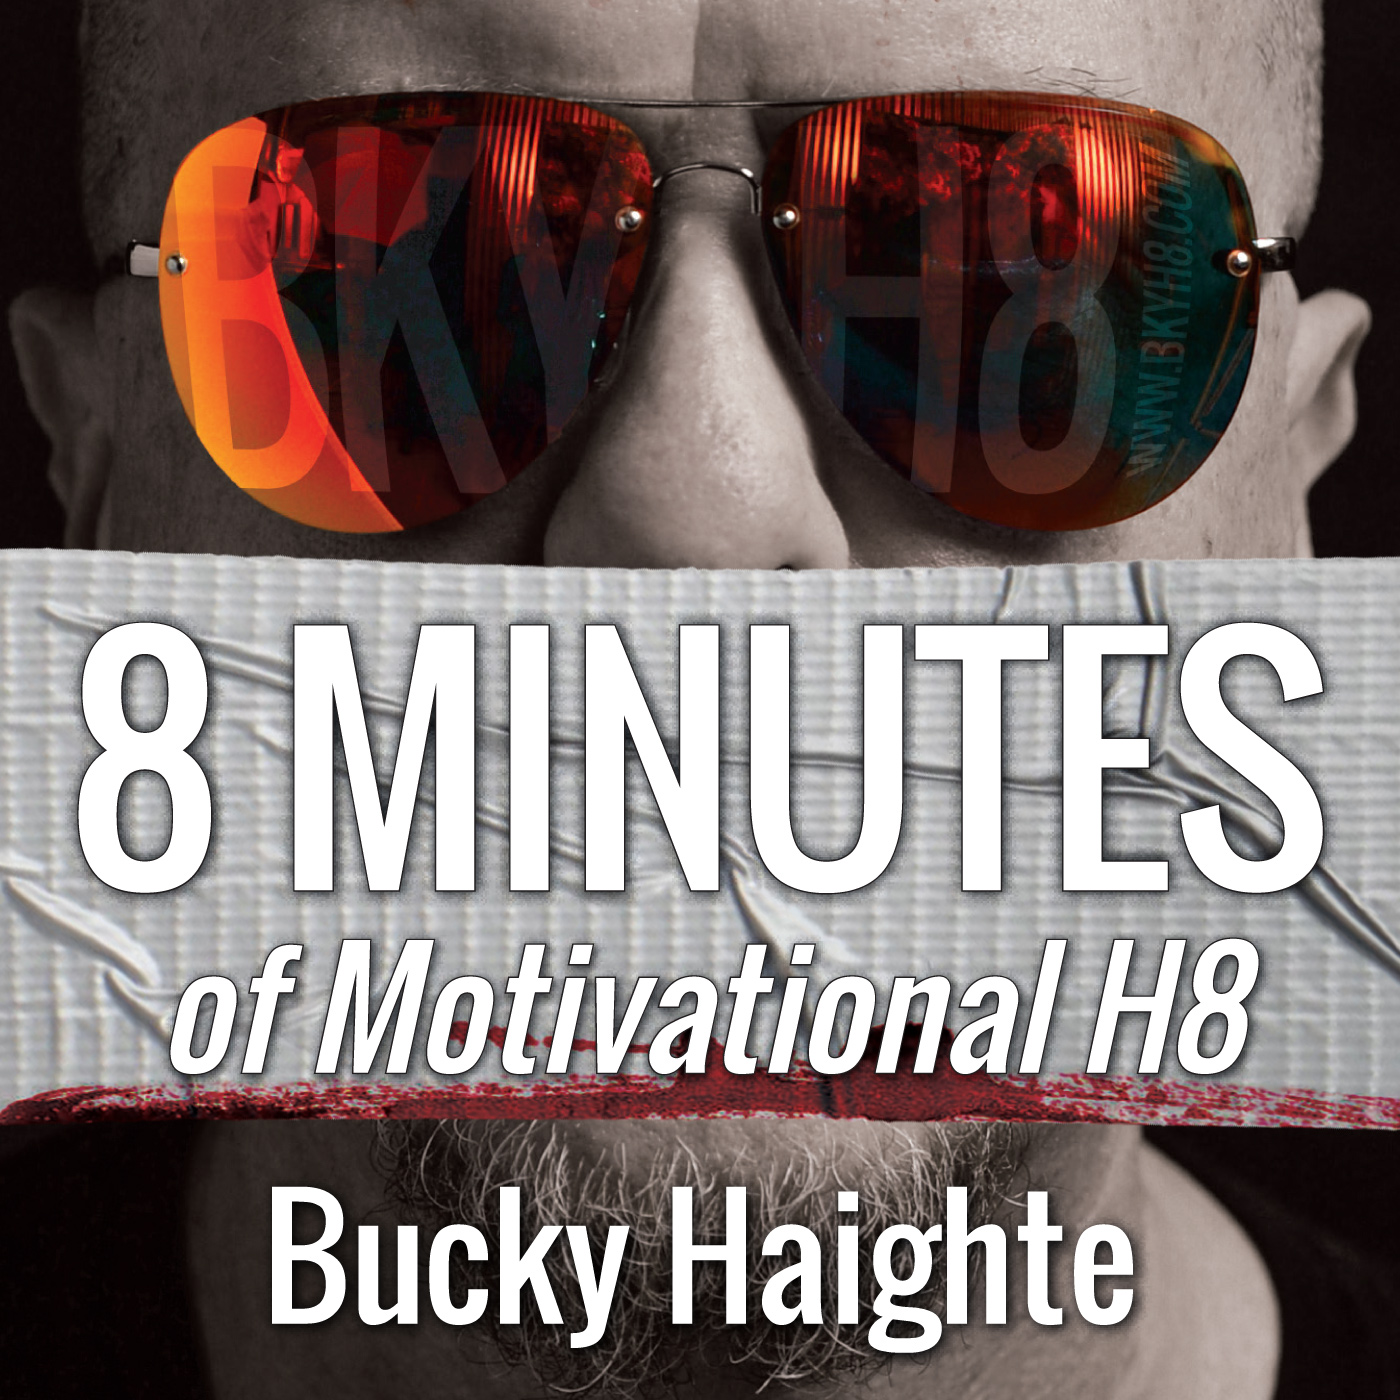 8 Minutes of Motivational H8 Podcast with Bucky Haighte